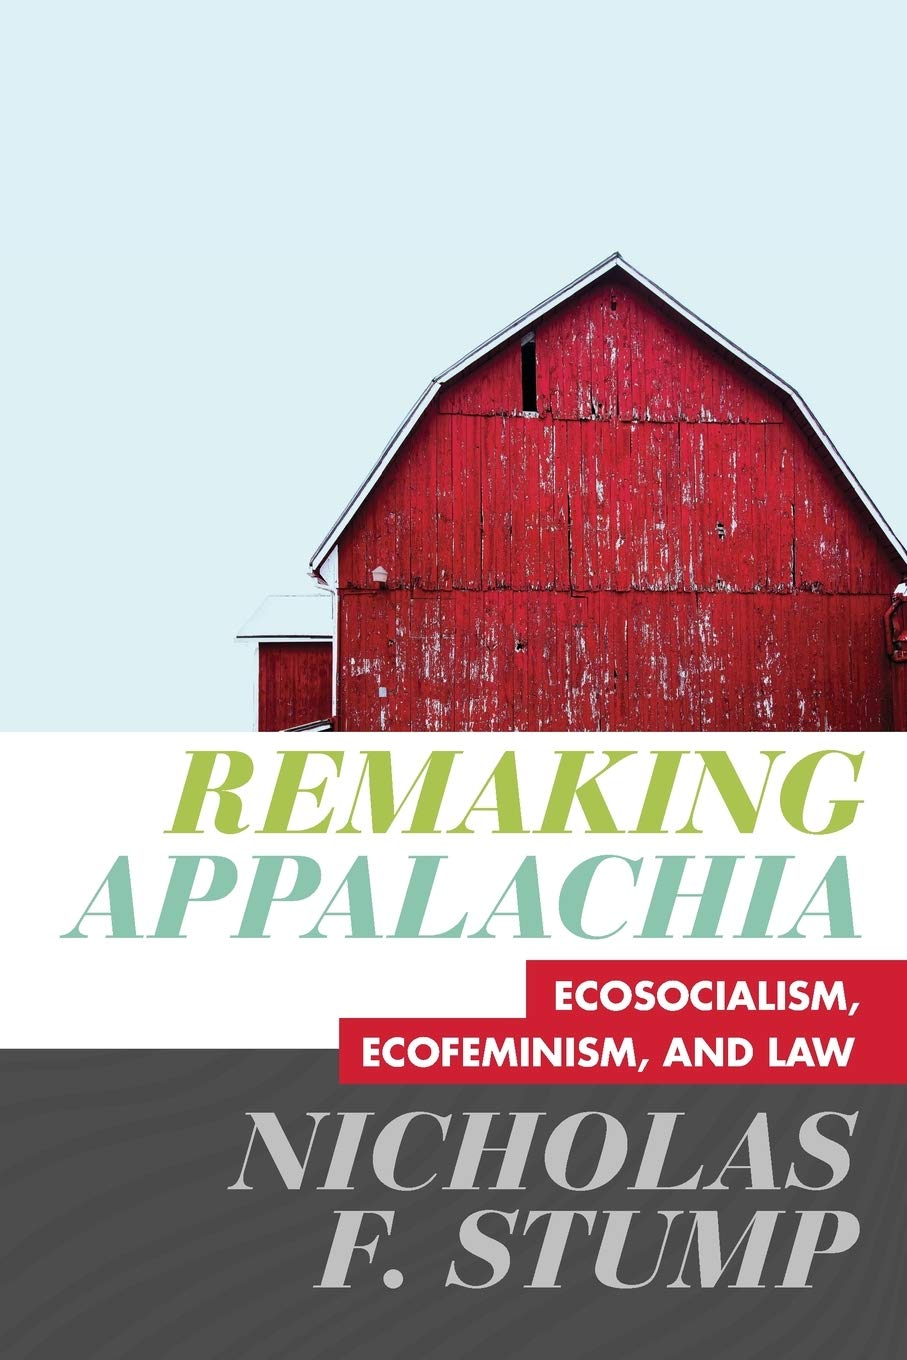 Image for Remaking Appalachia: Ecosocialism, Ecofeminism, and Law